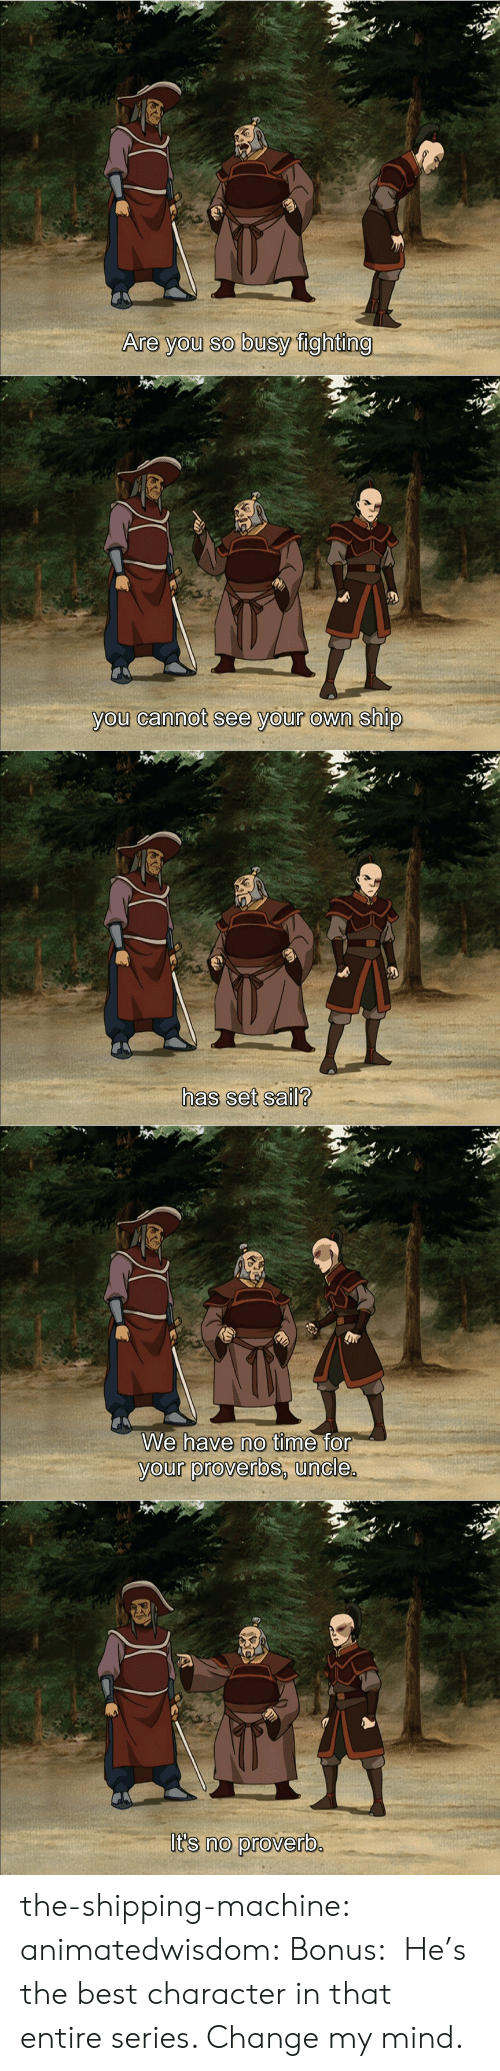 Target, Tumblr, and Best: Are you so busy fighting   you cannot see your own ship   has set sail?   We have no time for  your proverbs, uncle.   It's no proverb.  A the-shipping-machine: animatedwisdom:  Bonus:  He's the best character in that entire series. Change my mind.